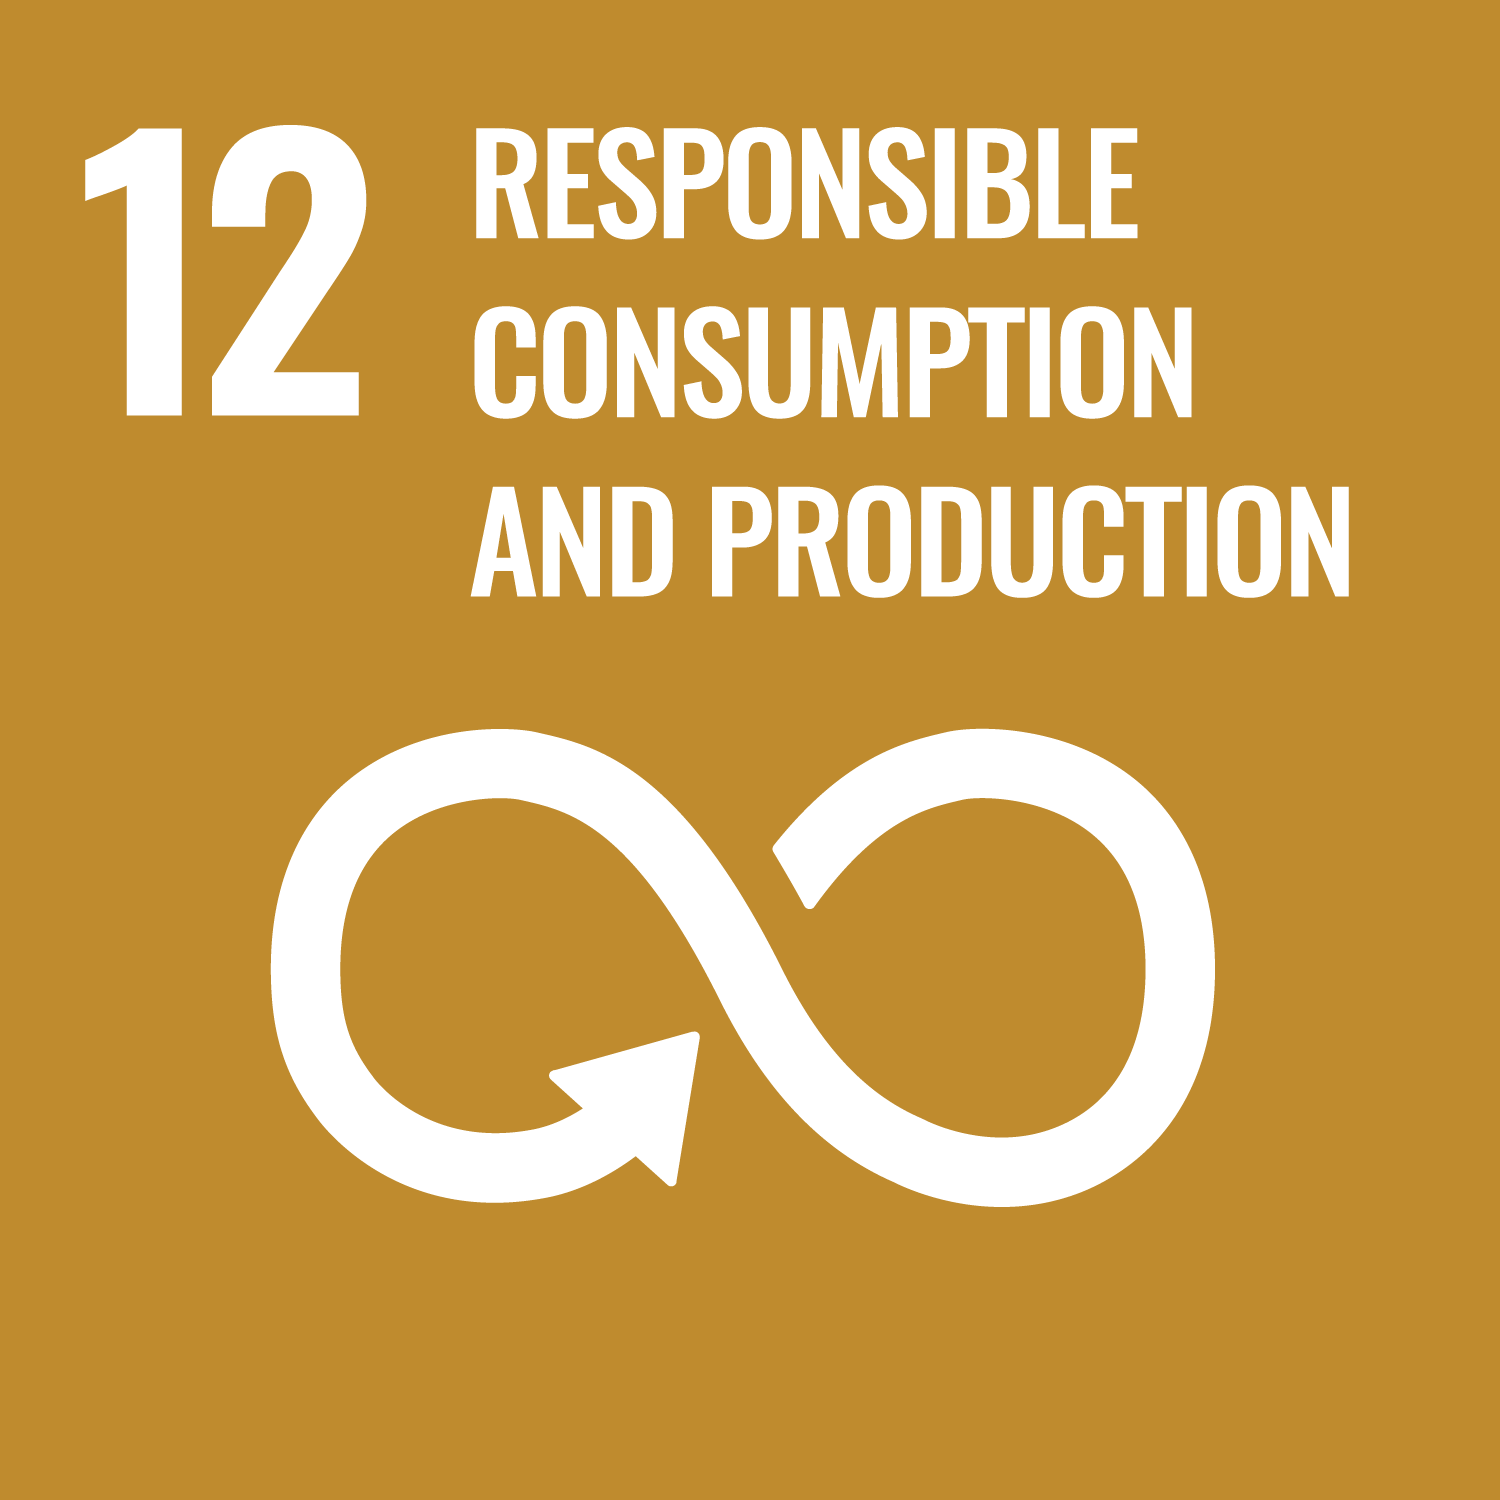 responsible consumption and production